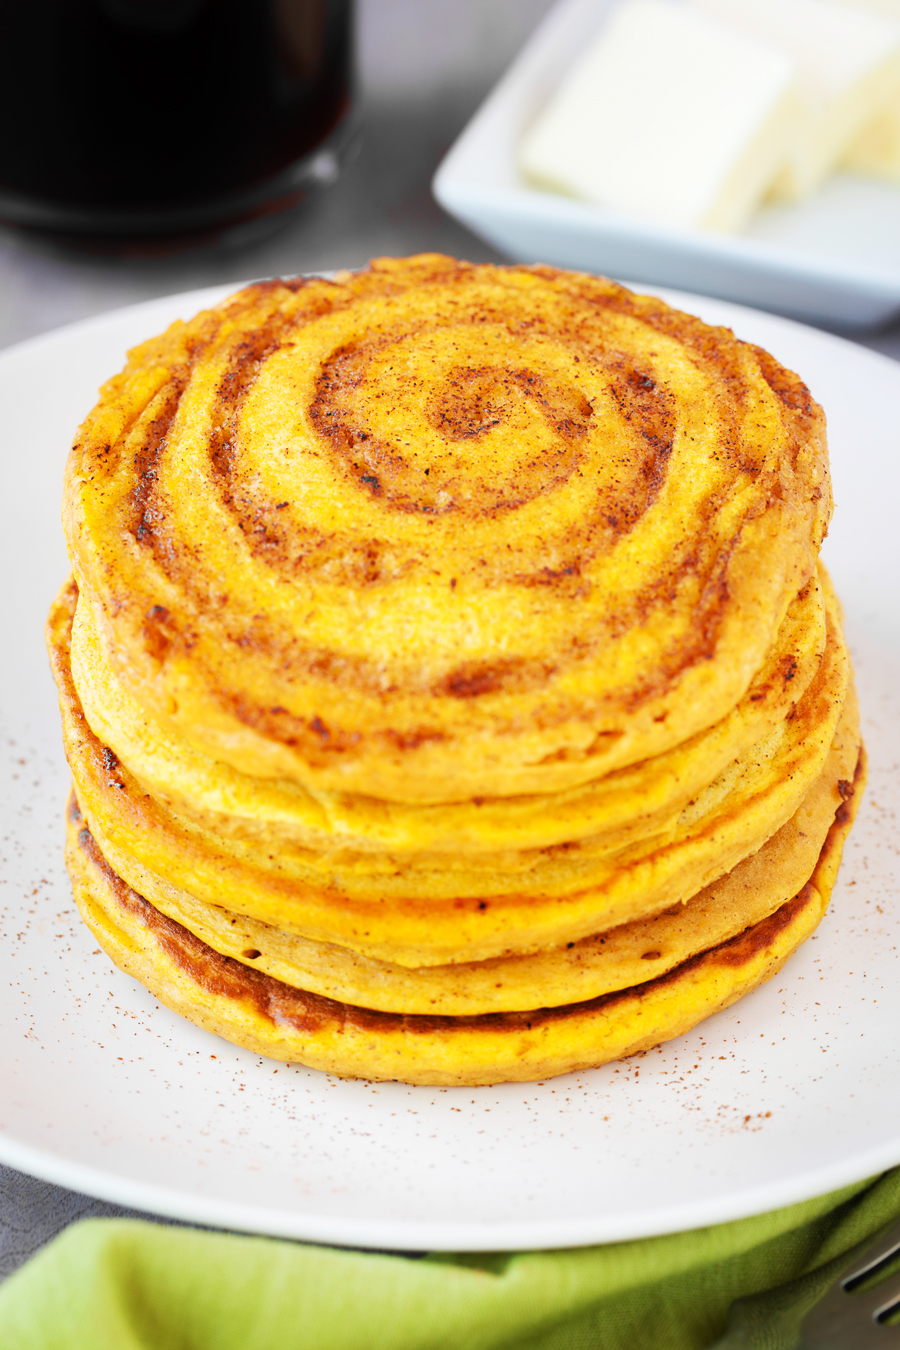 These Pumpkin Cinnamon Swirl Pancakes are filled with a cinnamon sugar swirl and delicious fall flavors!